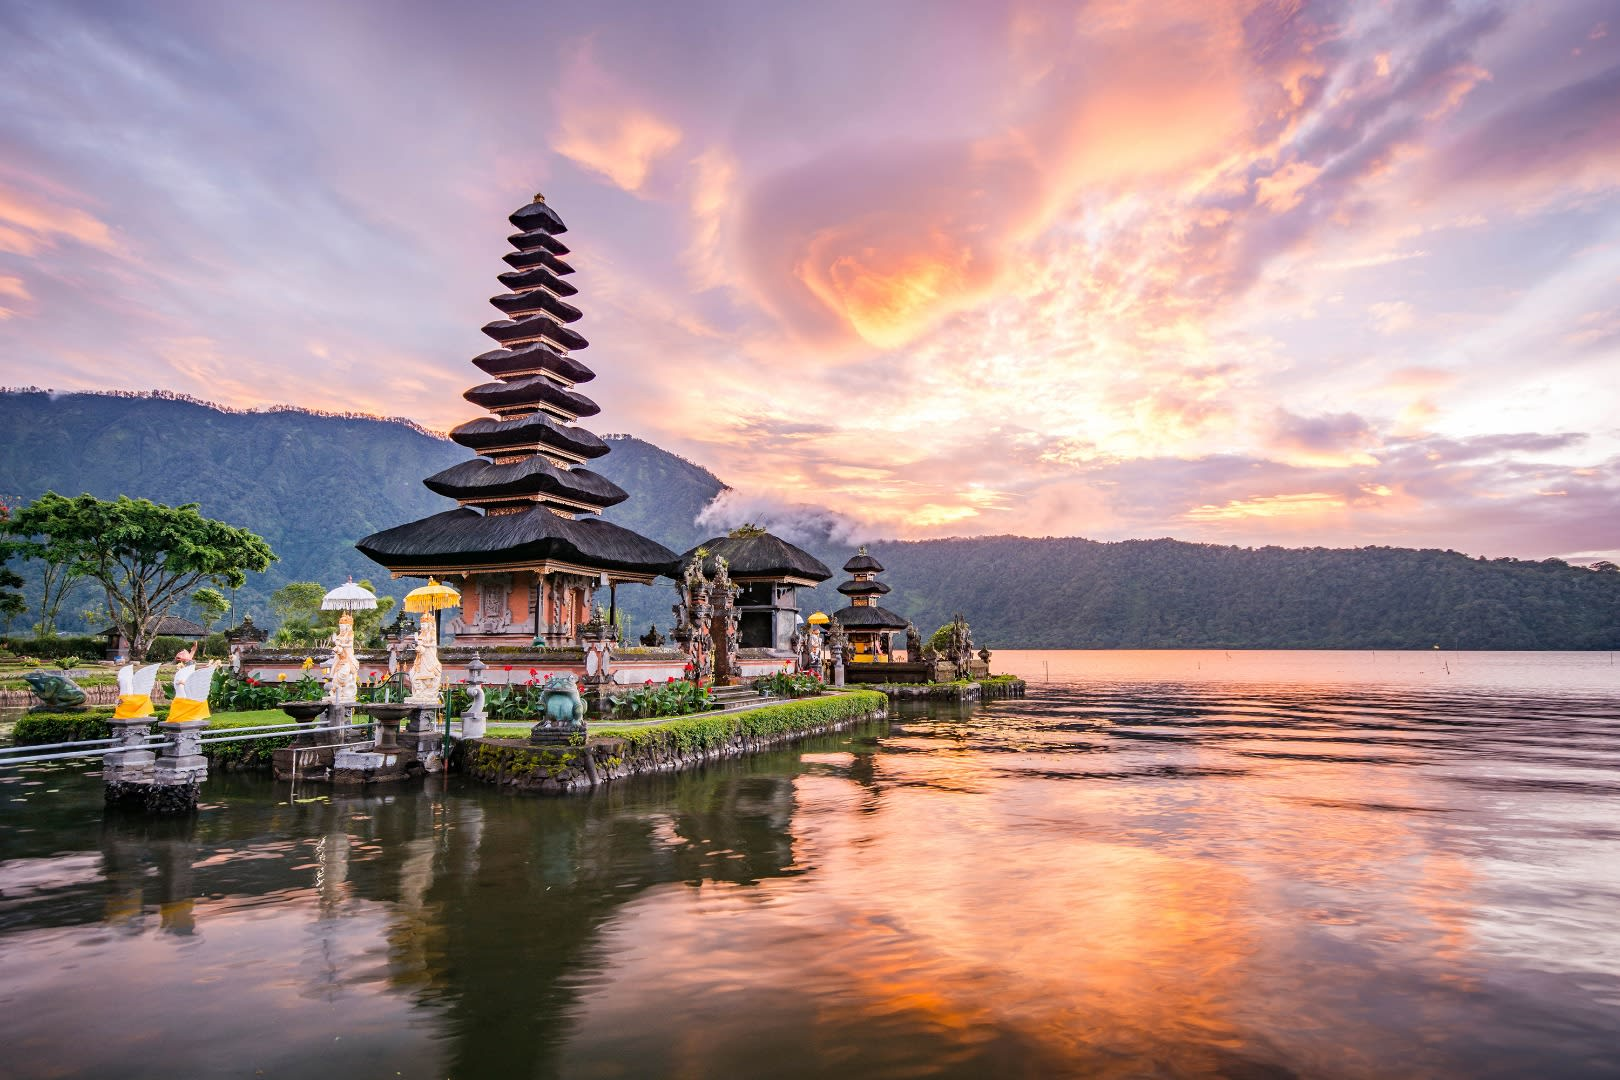 Romantic things to do in Bali for couples - Pura Ulun Danu Bratan cultural tour